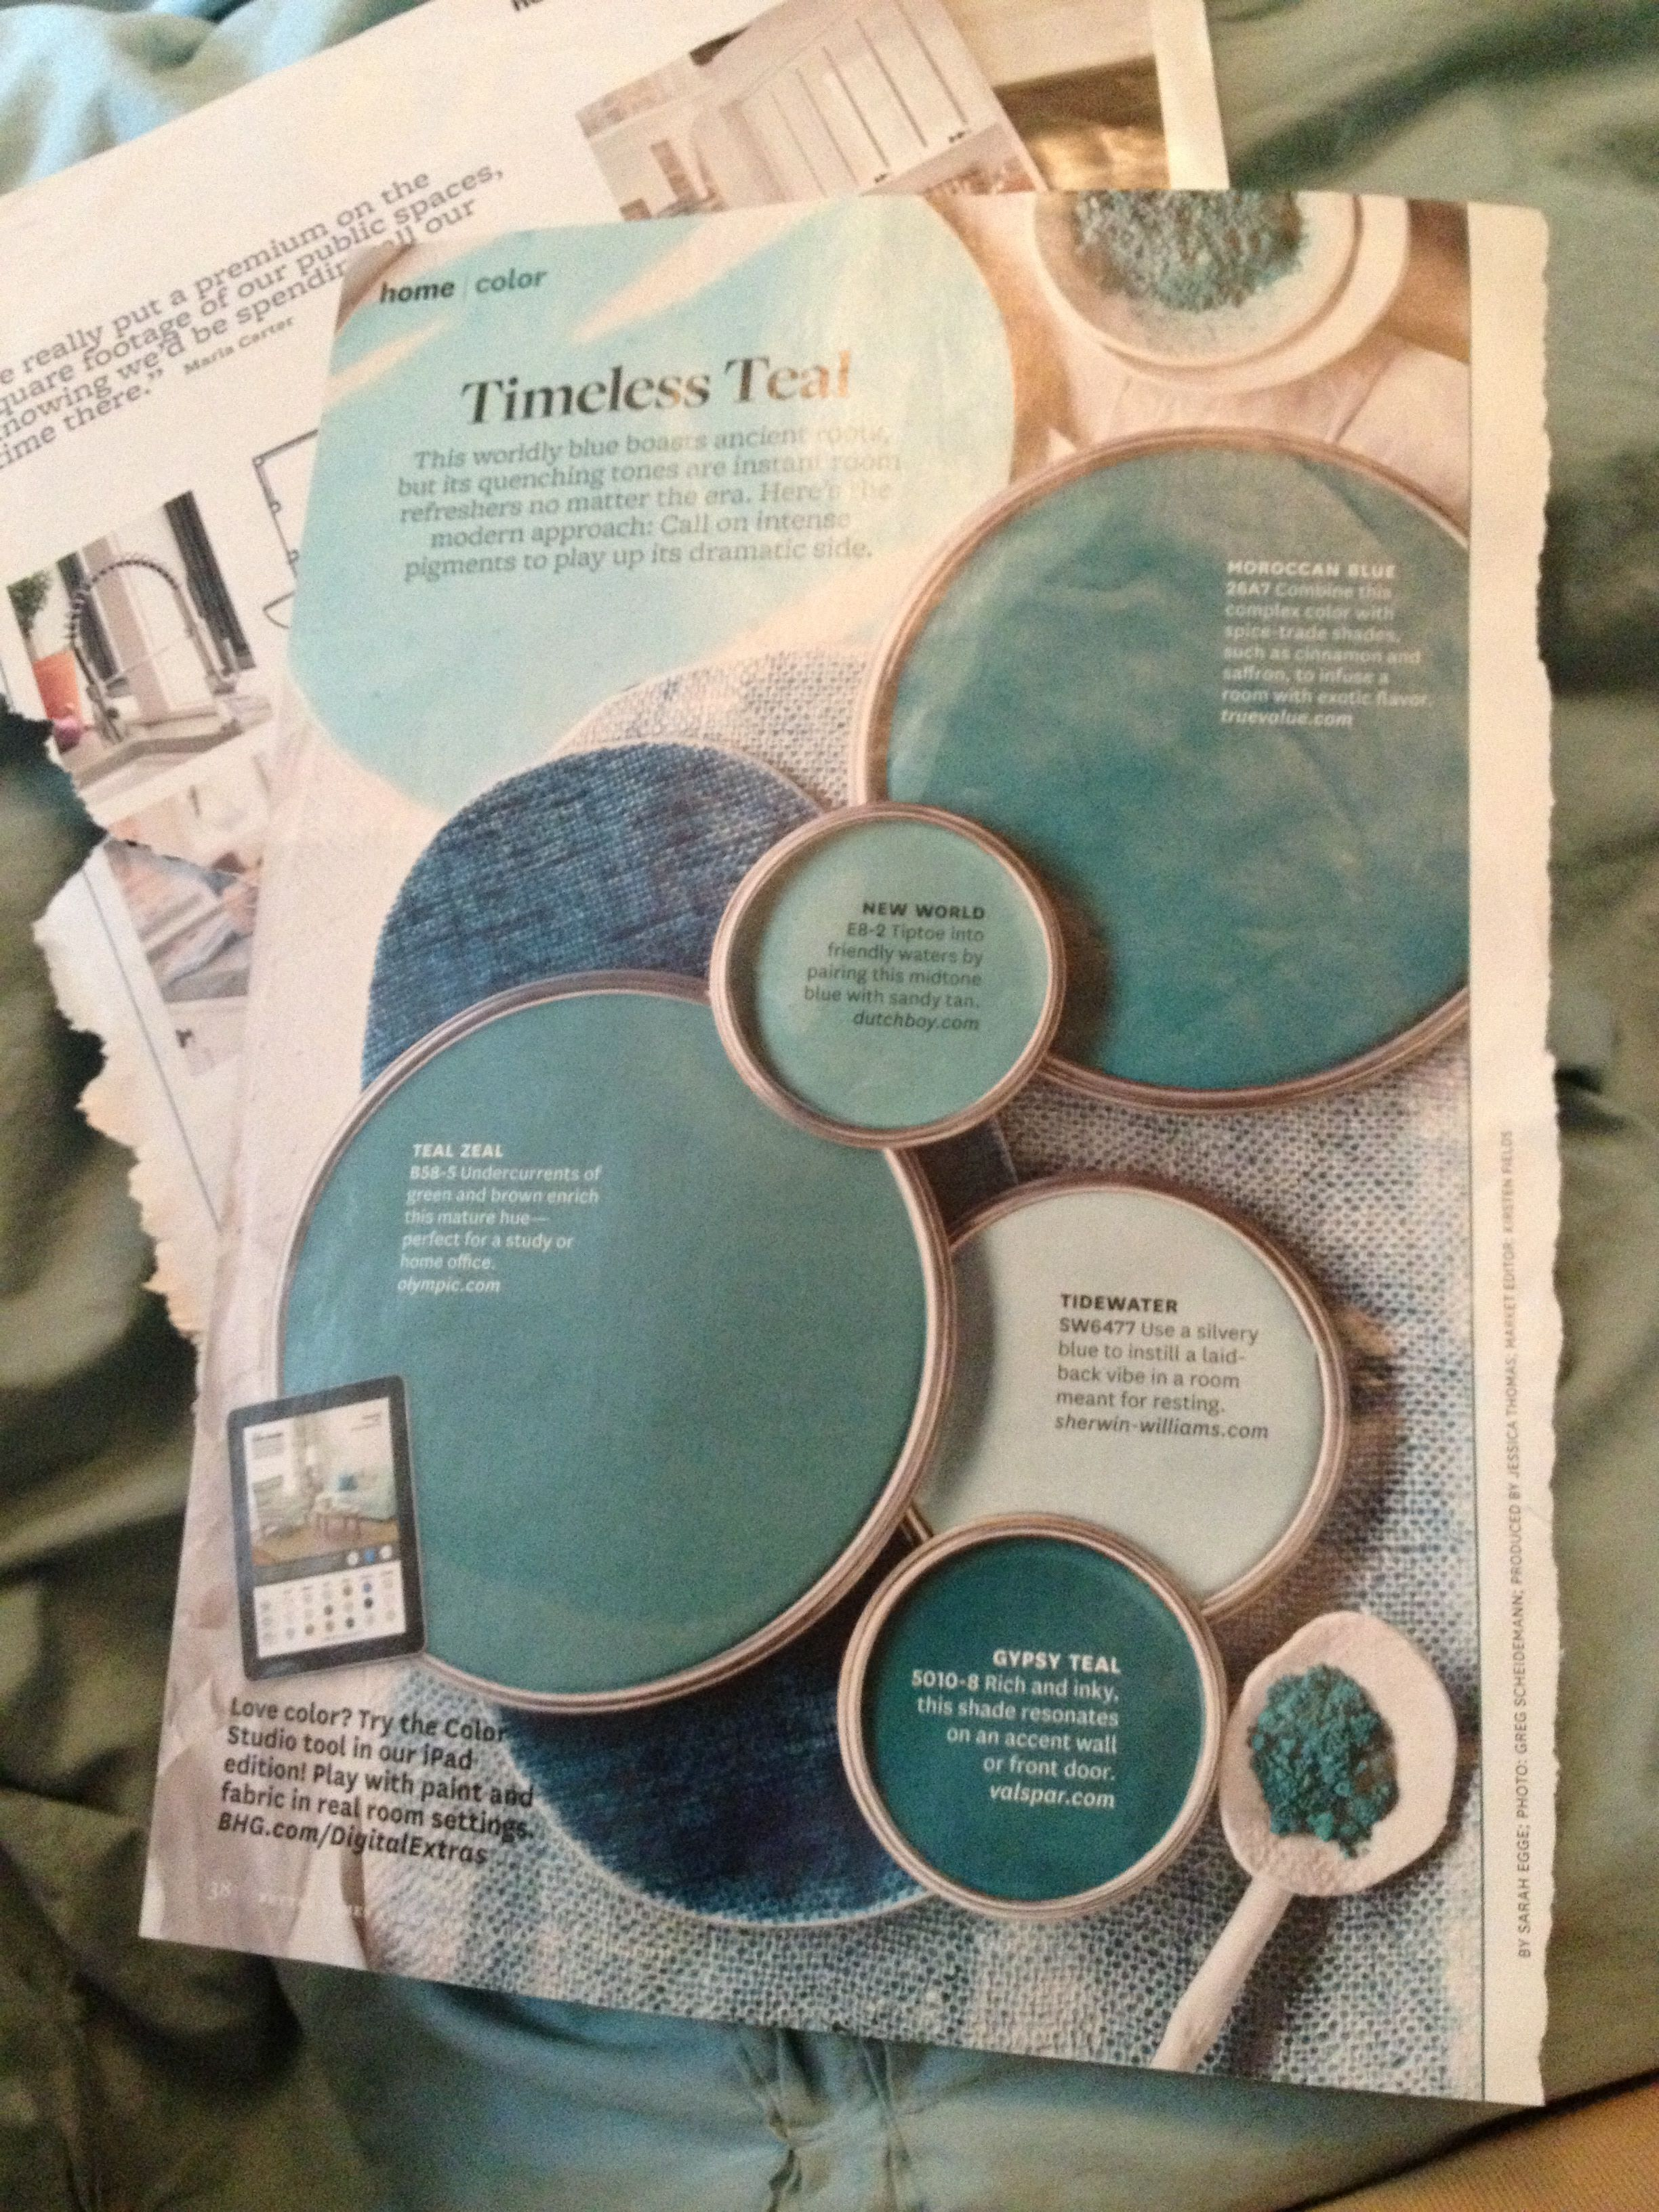 Timeless Paint Colors Alluring Of Timeless teal Paint colors | Home | Pinterest Images